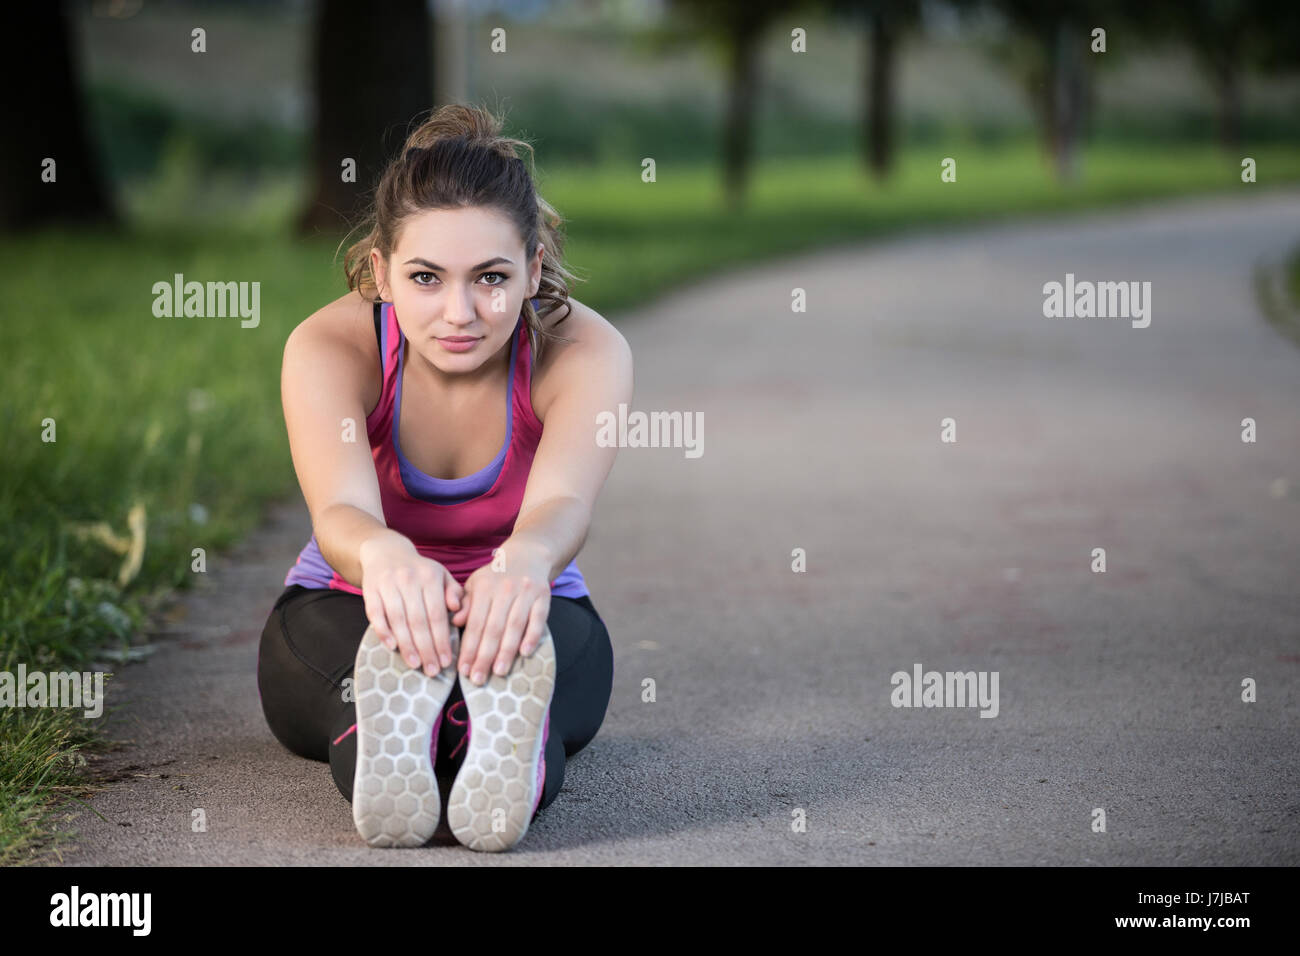 Woman is stretching before jogging. Fitness and lifestyle concept. - Stock Image